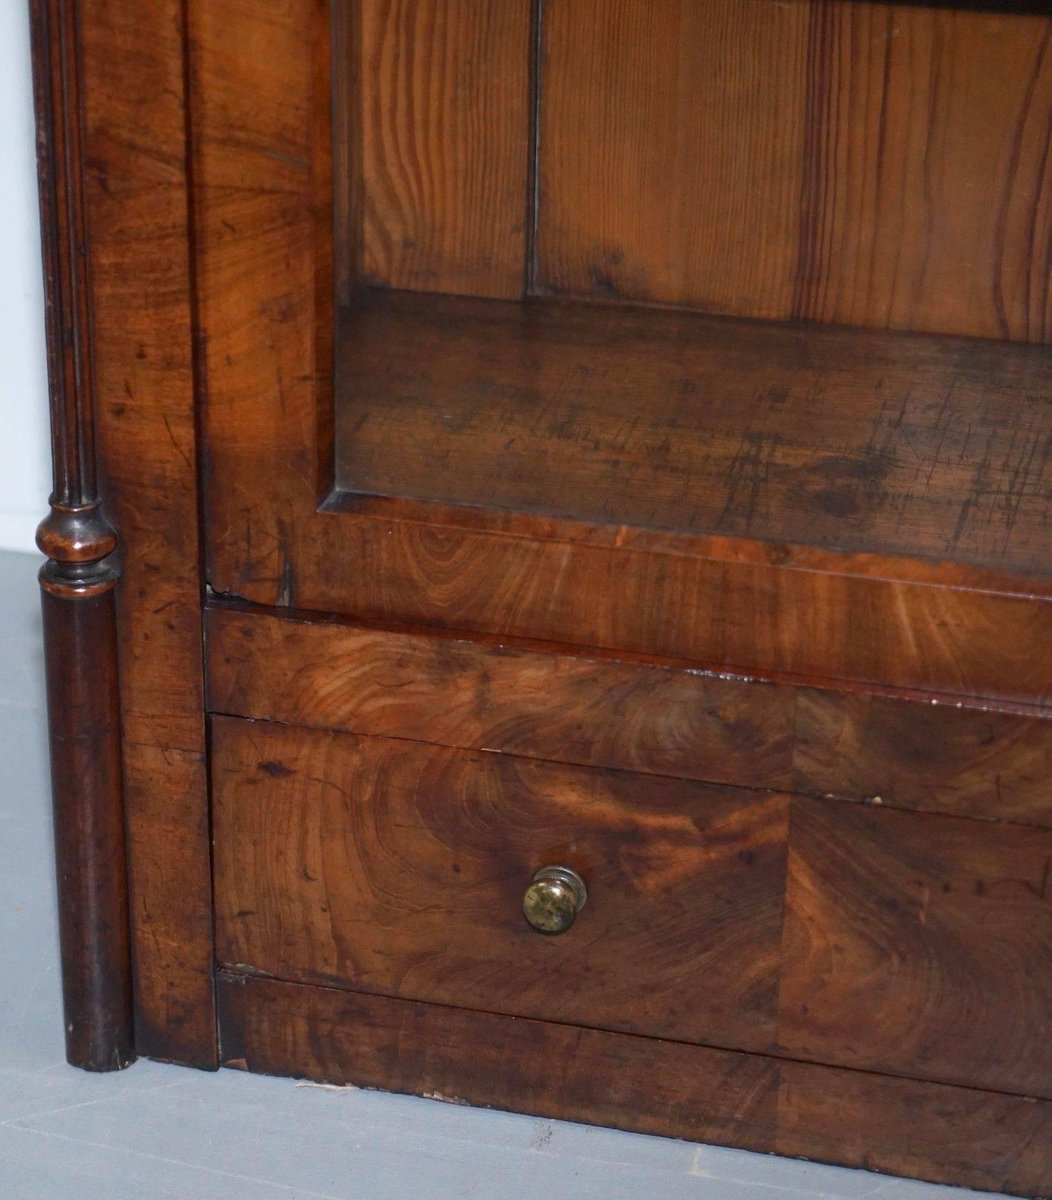 Regency Mahogany Arched Top Bookcase 1810s